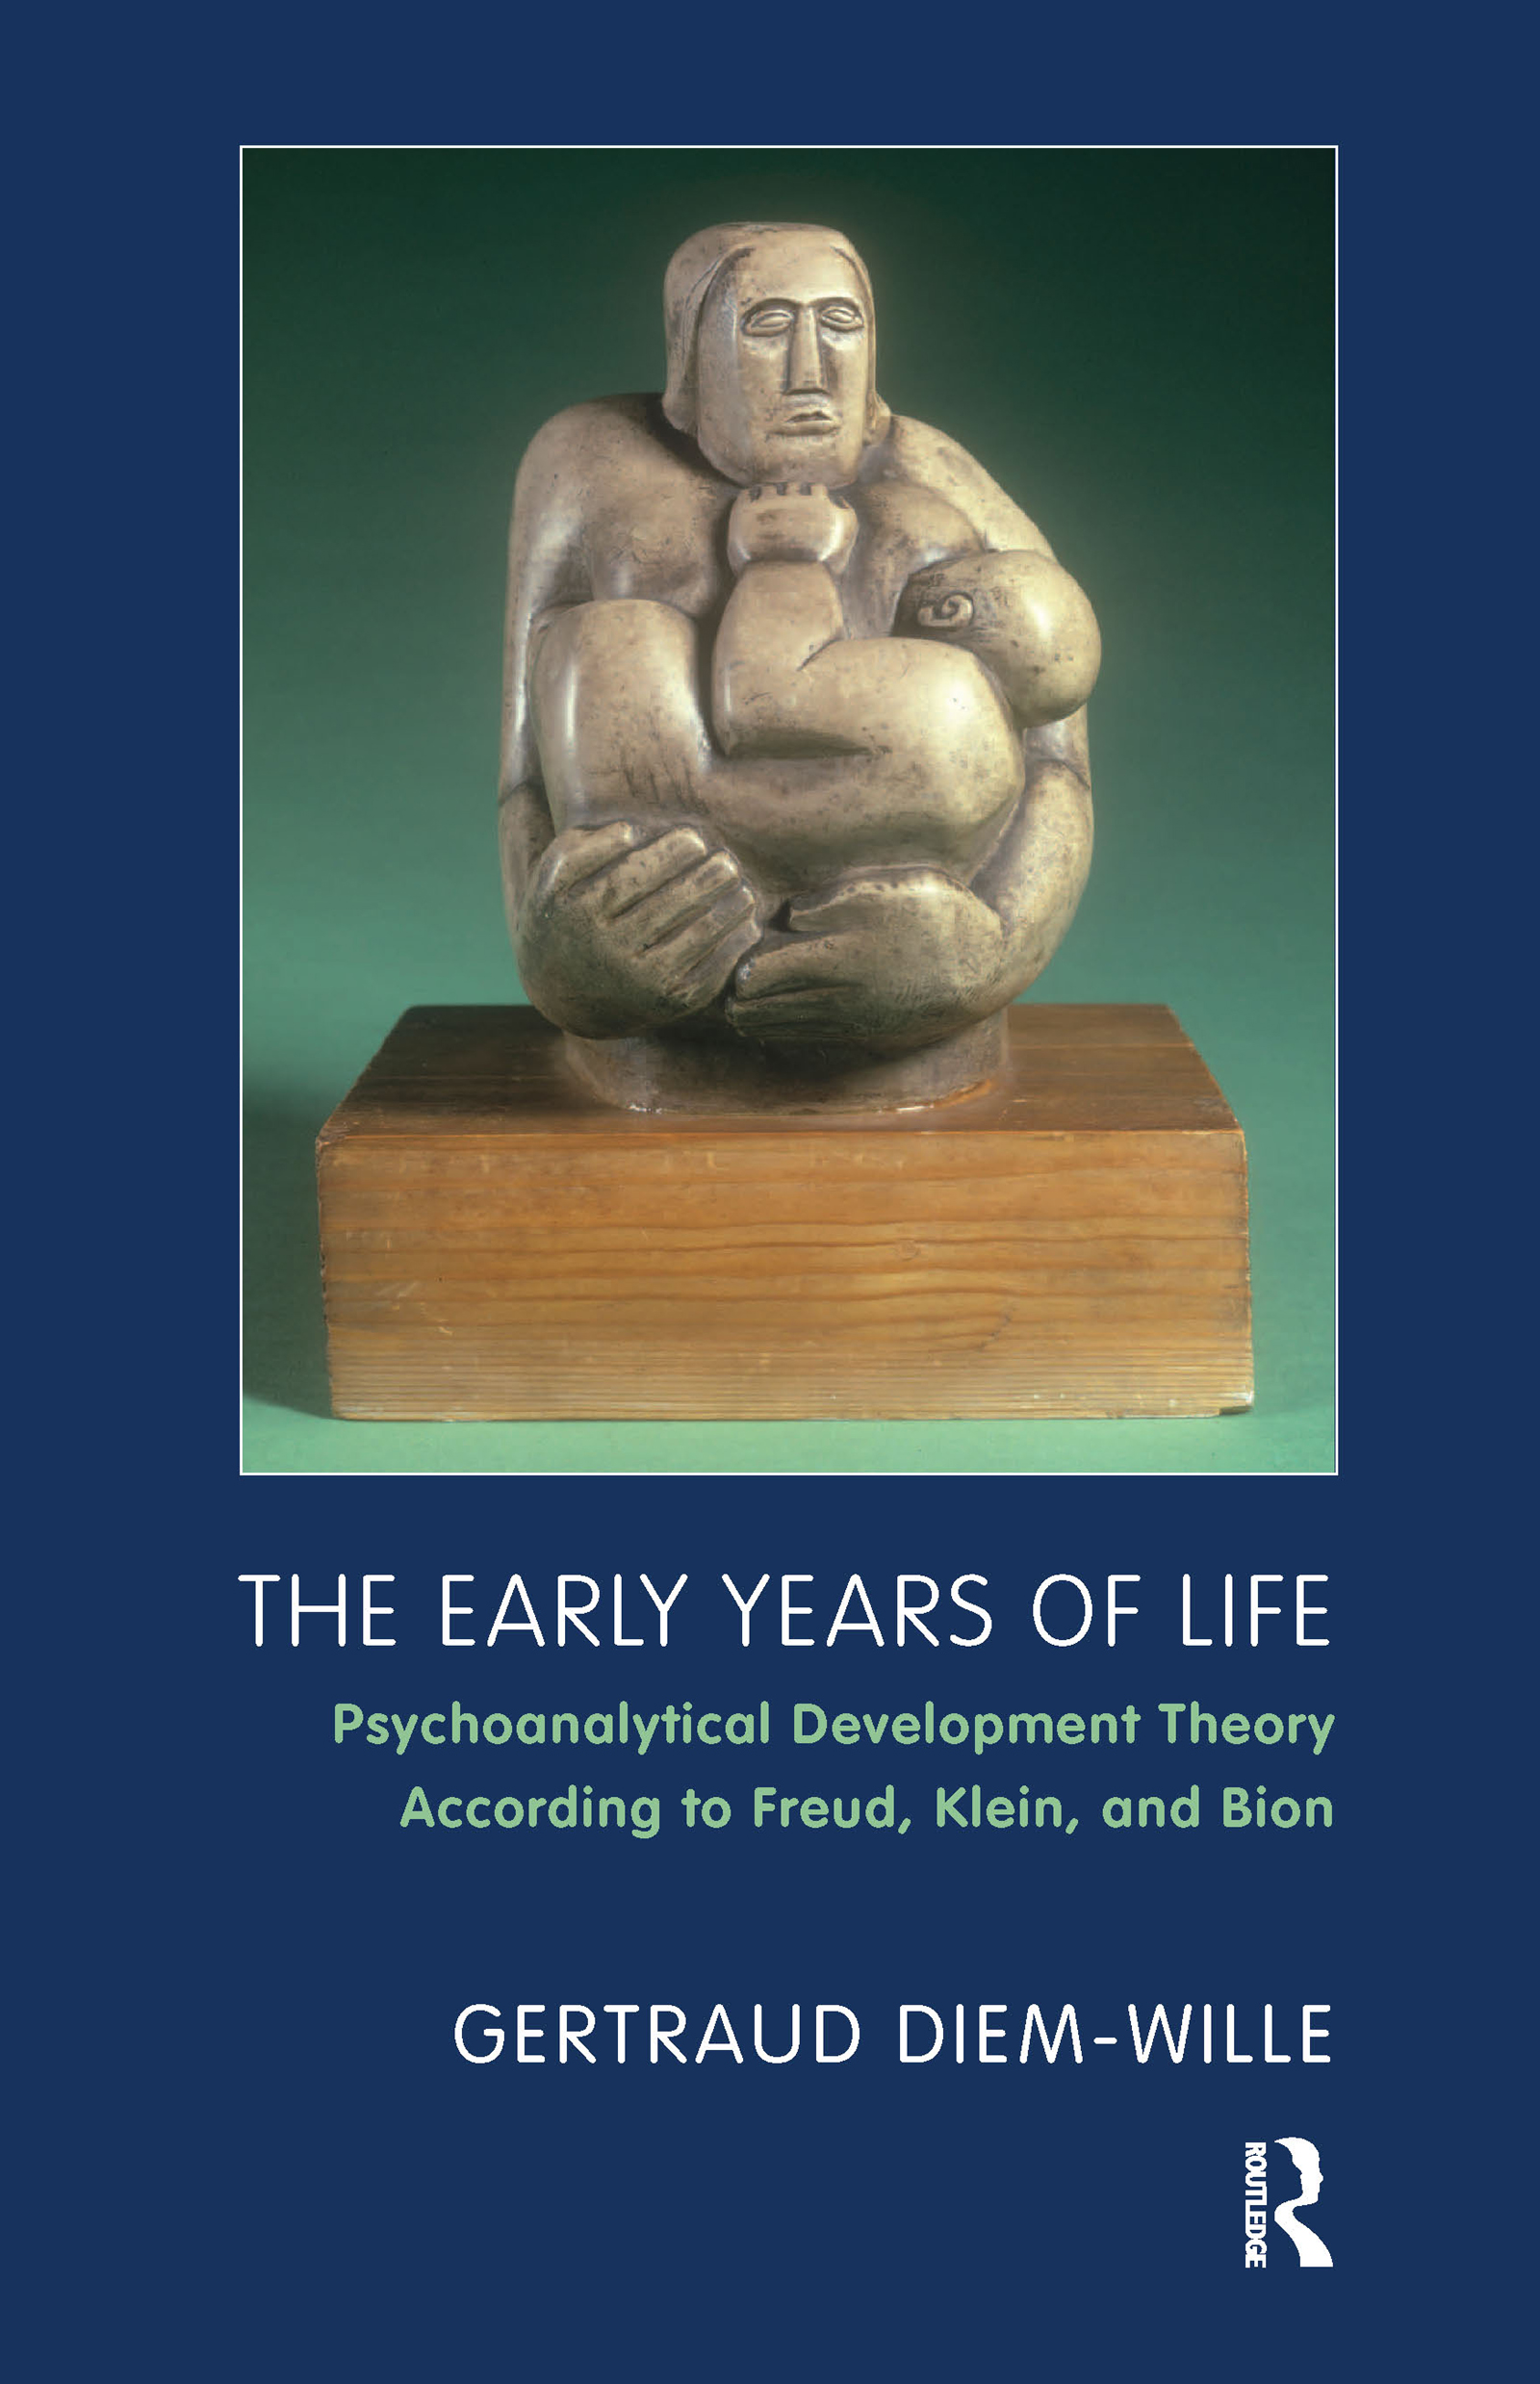 The Early Years of Life: Psychoanalytical Development Theory According to Freud, Klein, and Bion, 1st Edition (Paperback) book cover